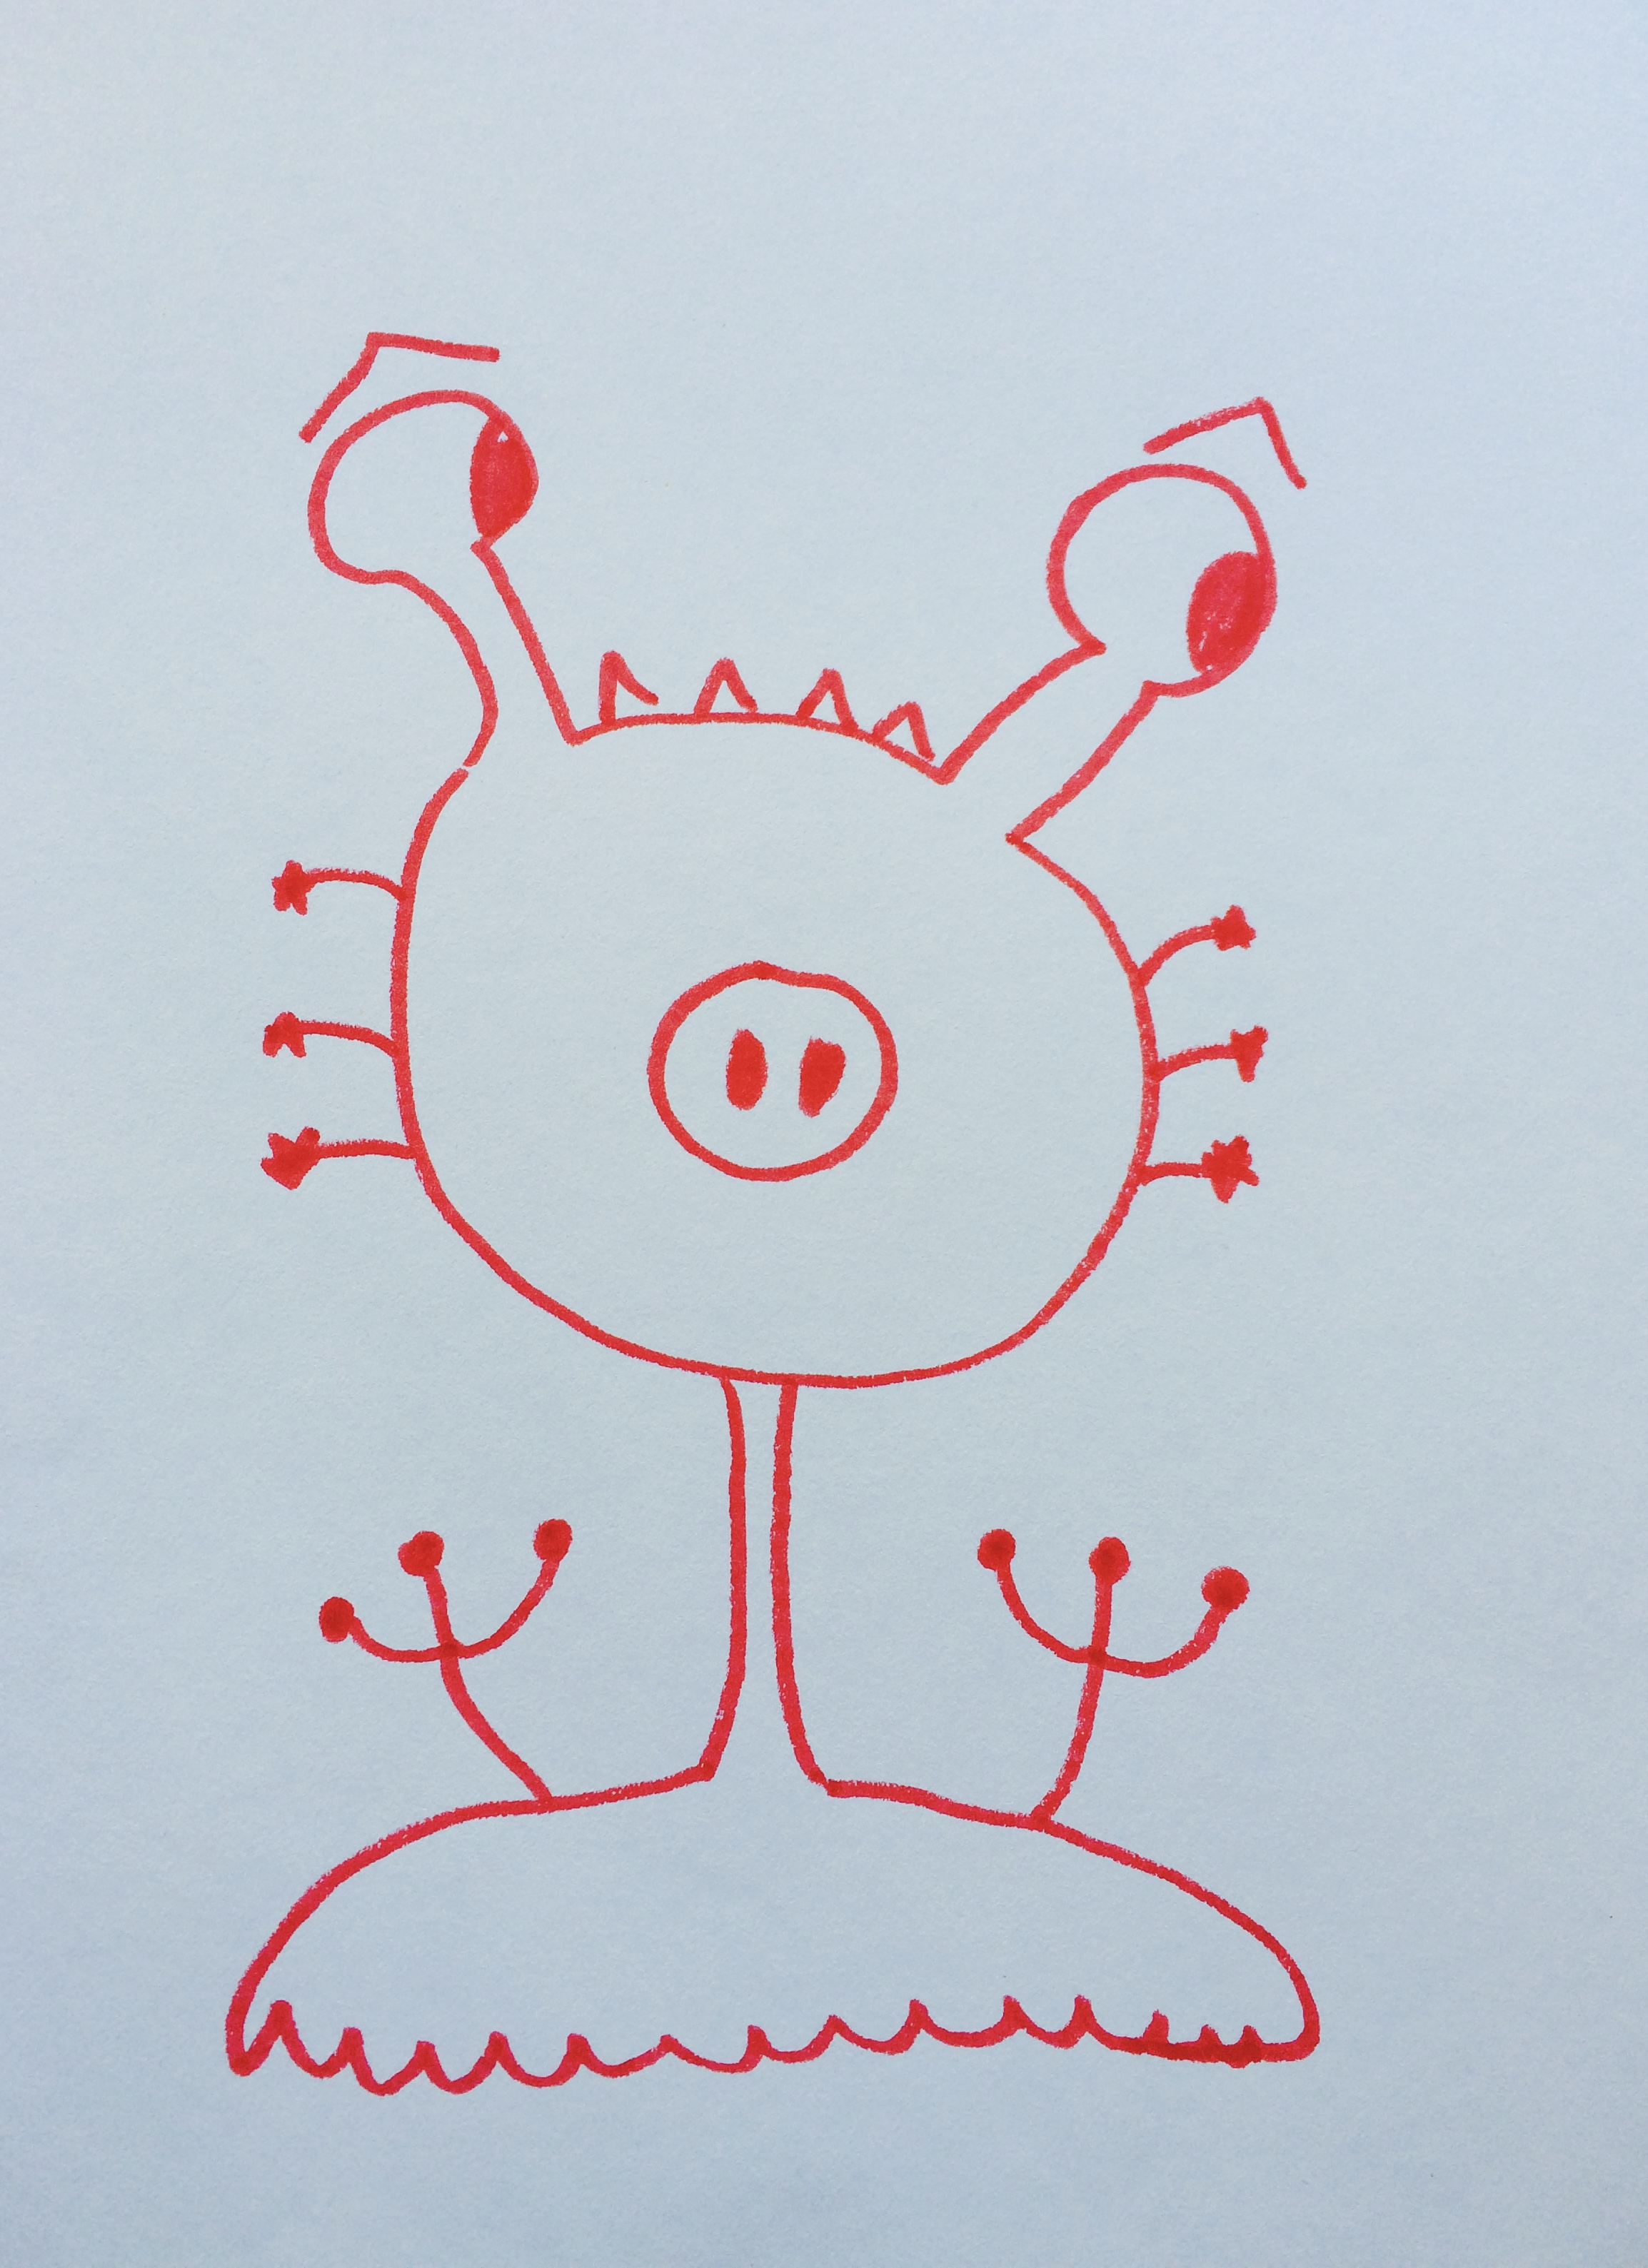 Silly monster by Hannah